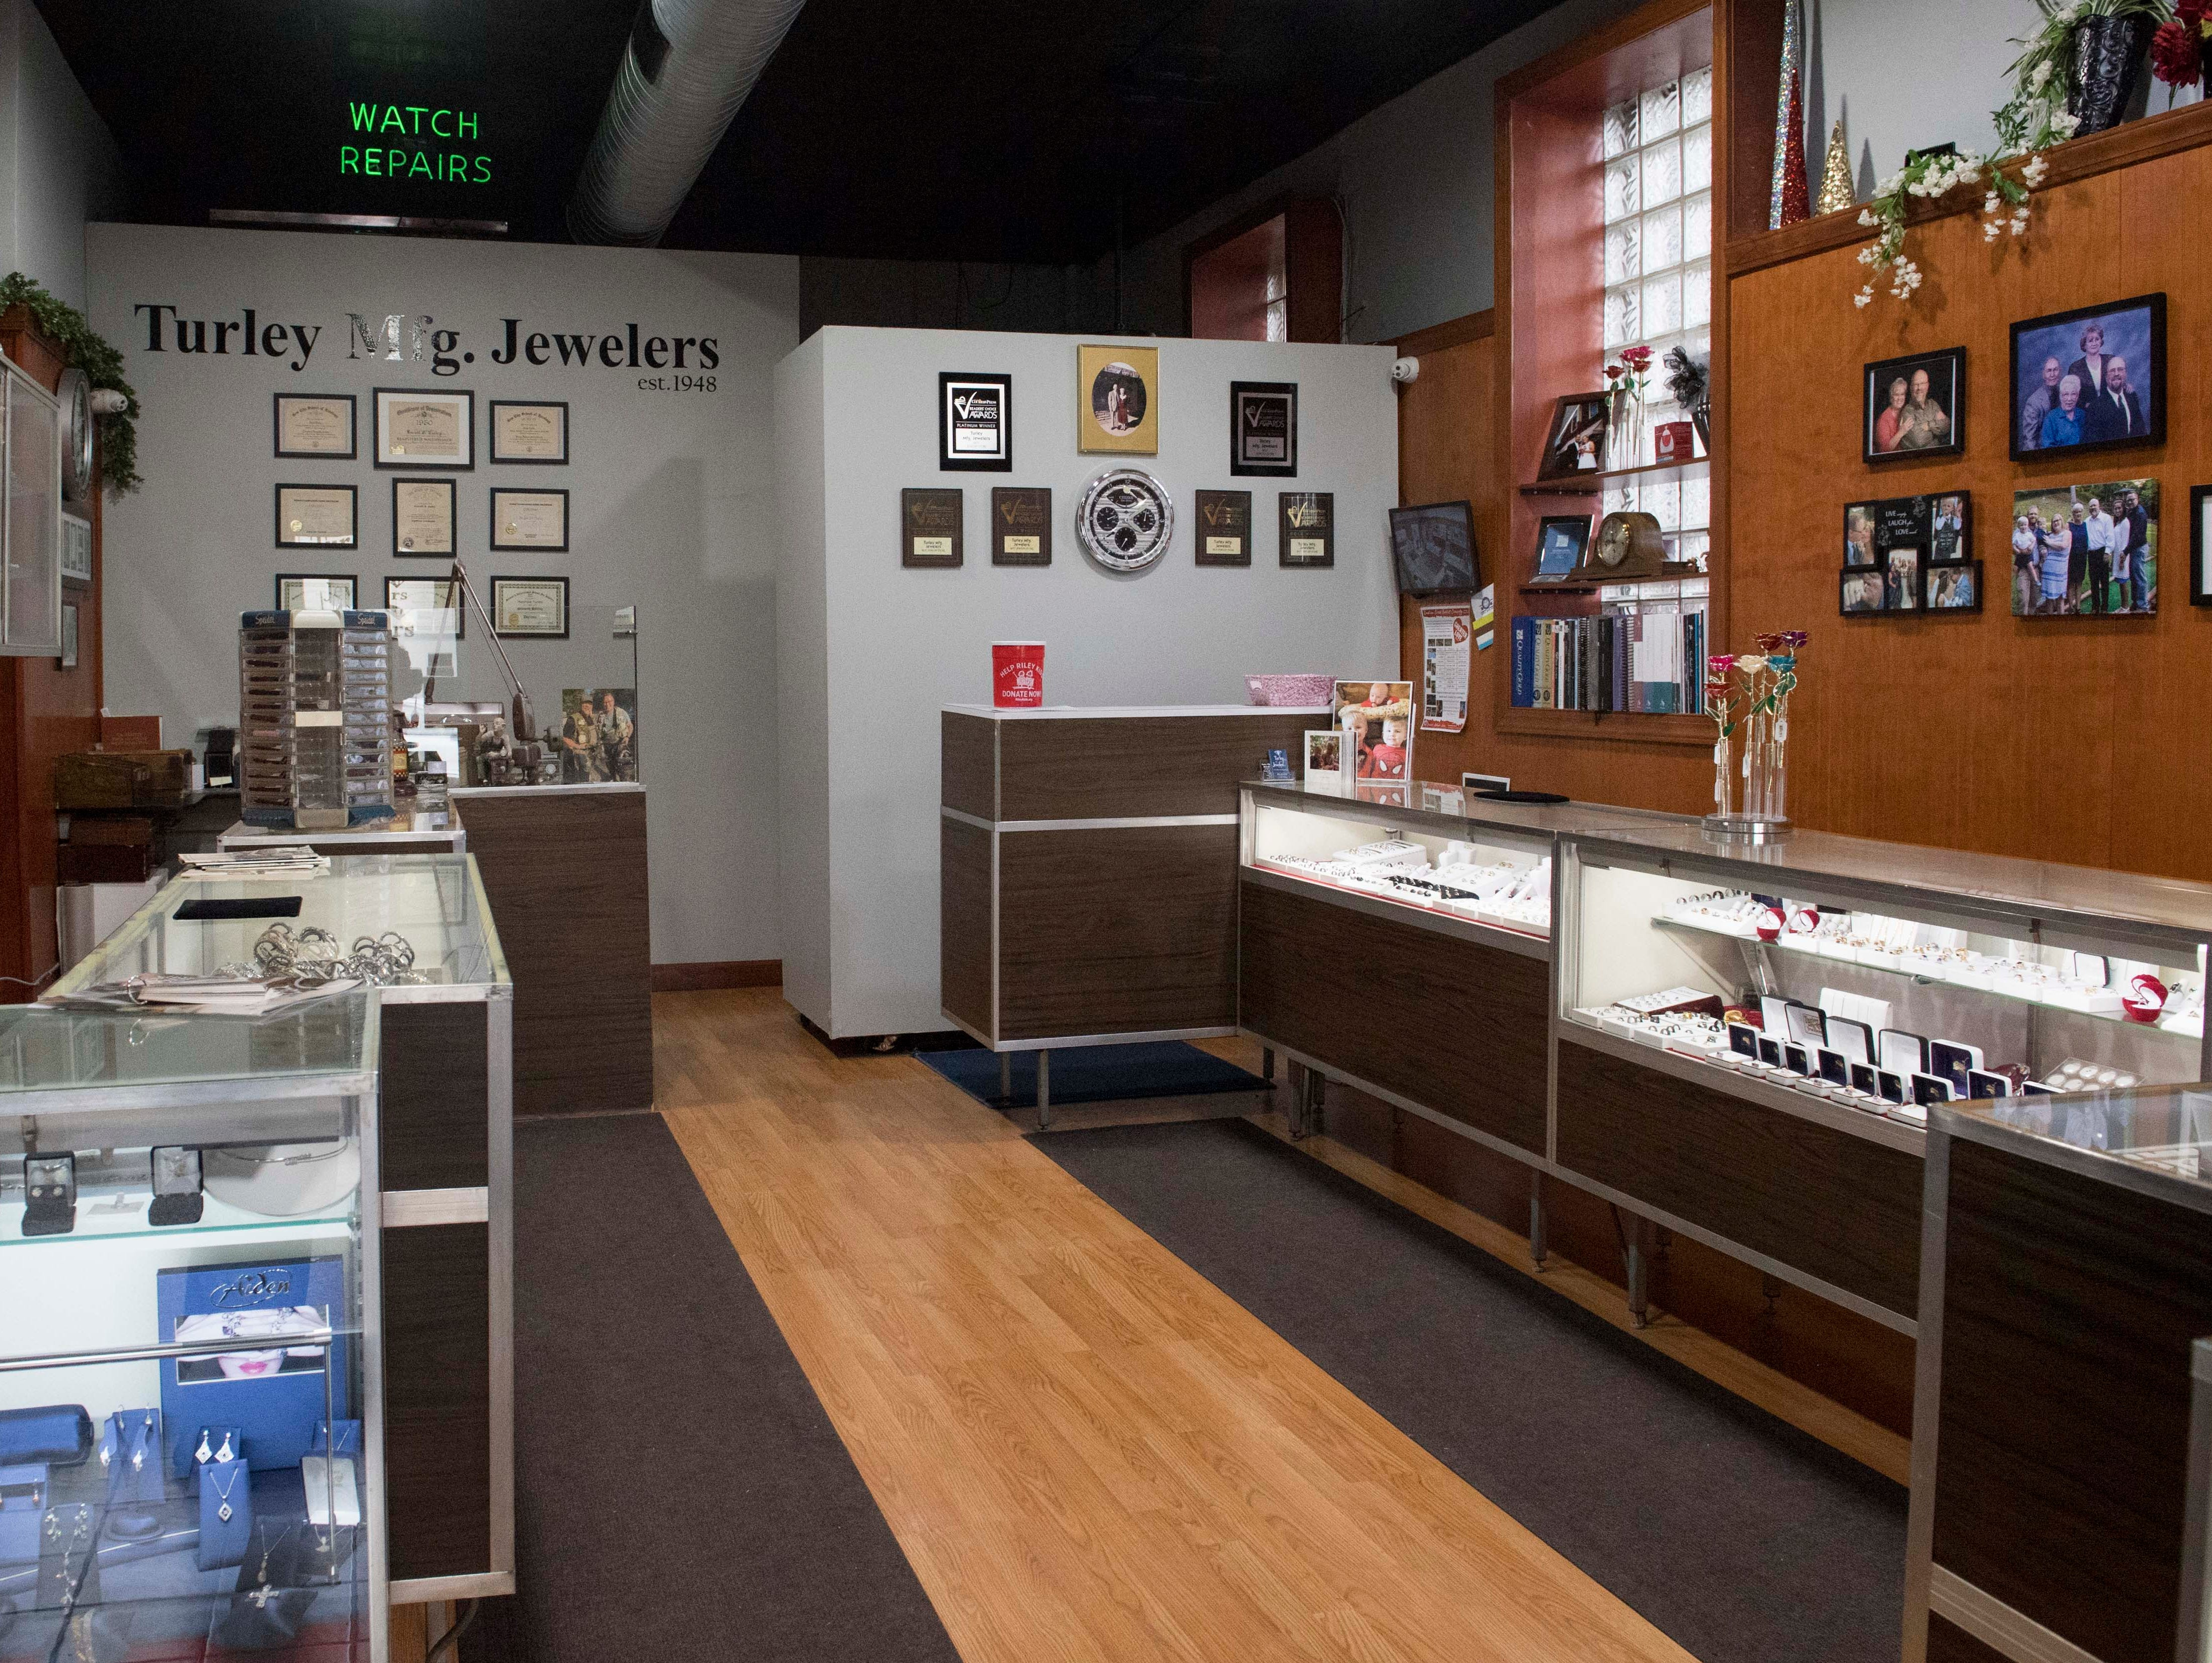 Turley Mfg. Jewelers is a third generation family own jewelry store in its 71st year in Downtown Evansville, Indiana.